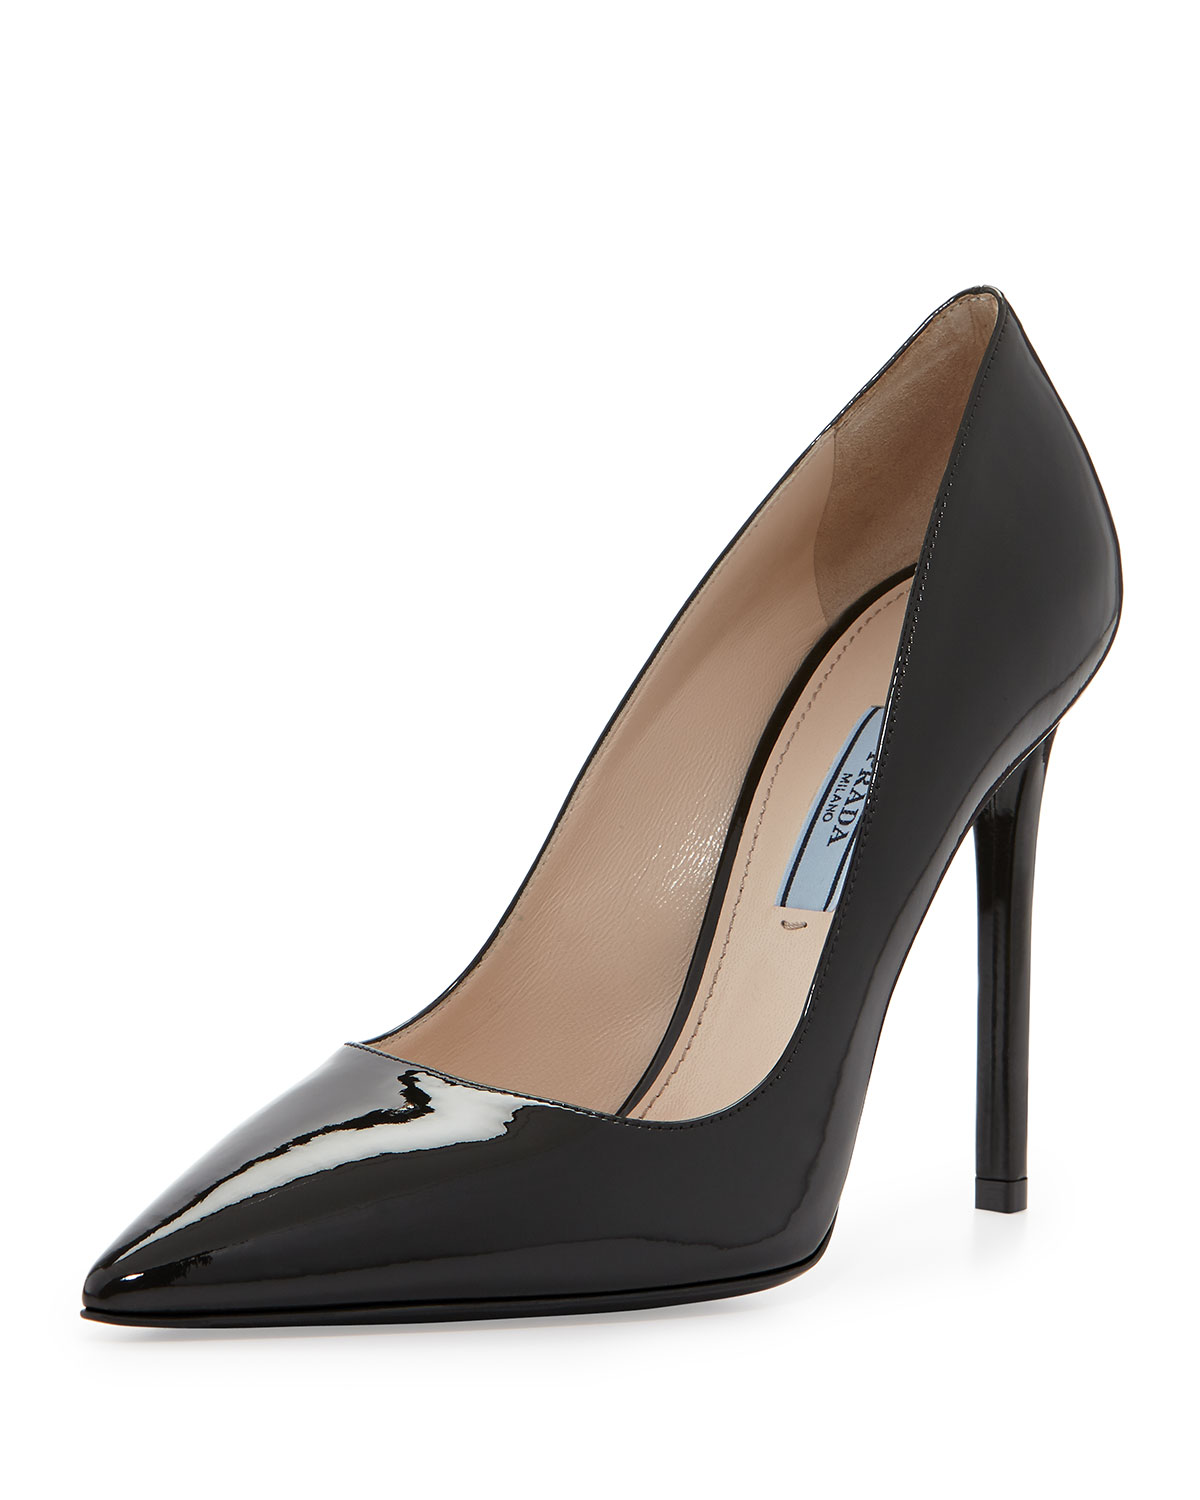 2b659ac5d0e Prada Patent Pointed-Toe Pump